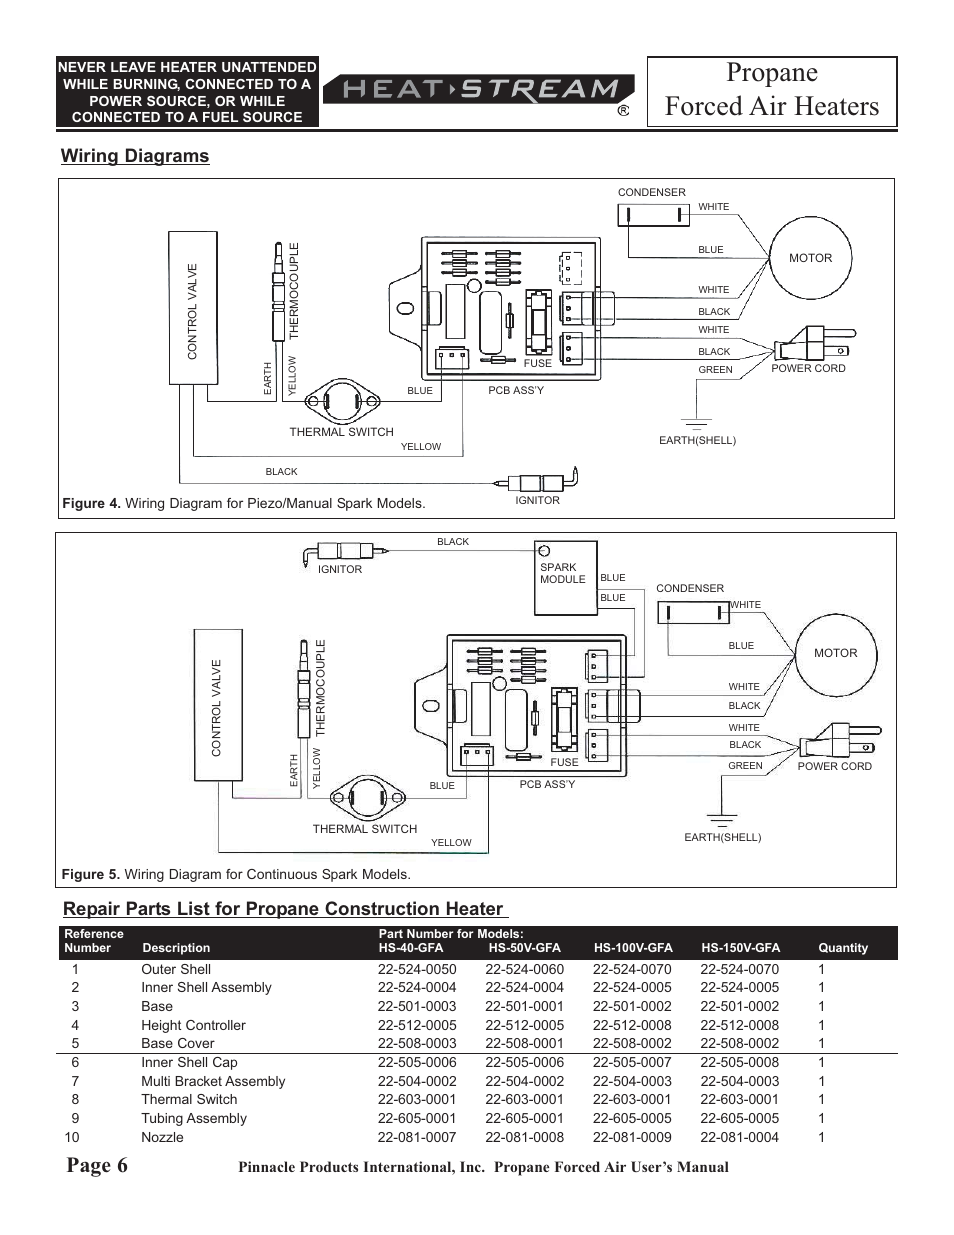 Propane Forced Air Heaters  Page 6  Wiring Diagrams